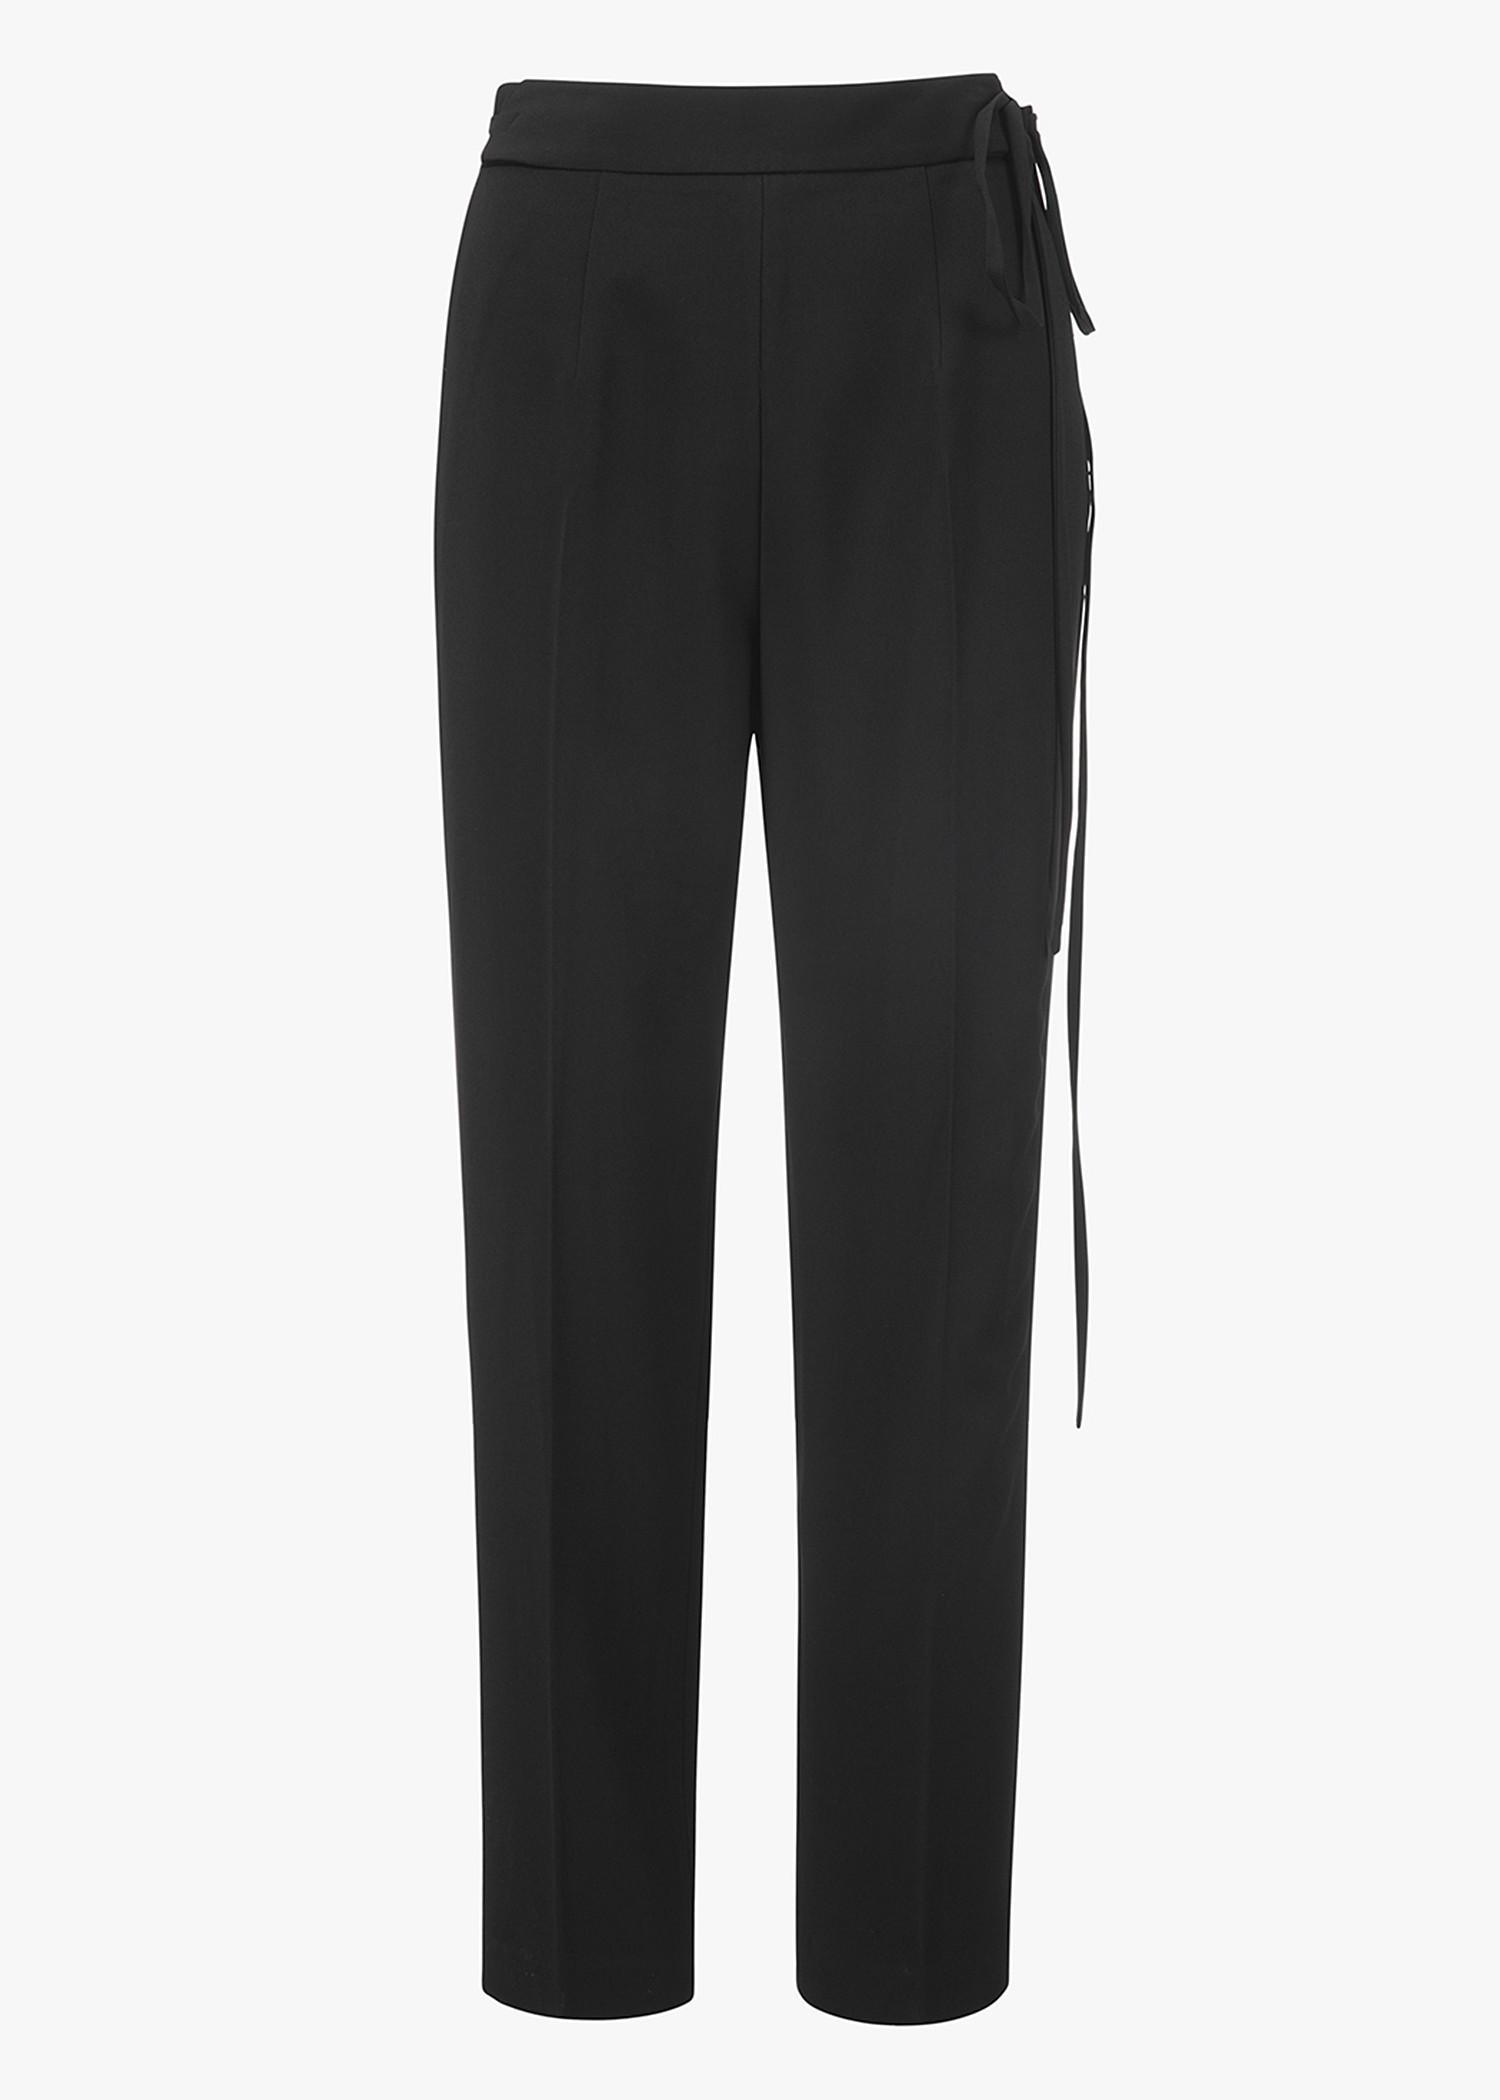 T By Alexander Wang Waist Tie Trouser In Black